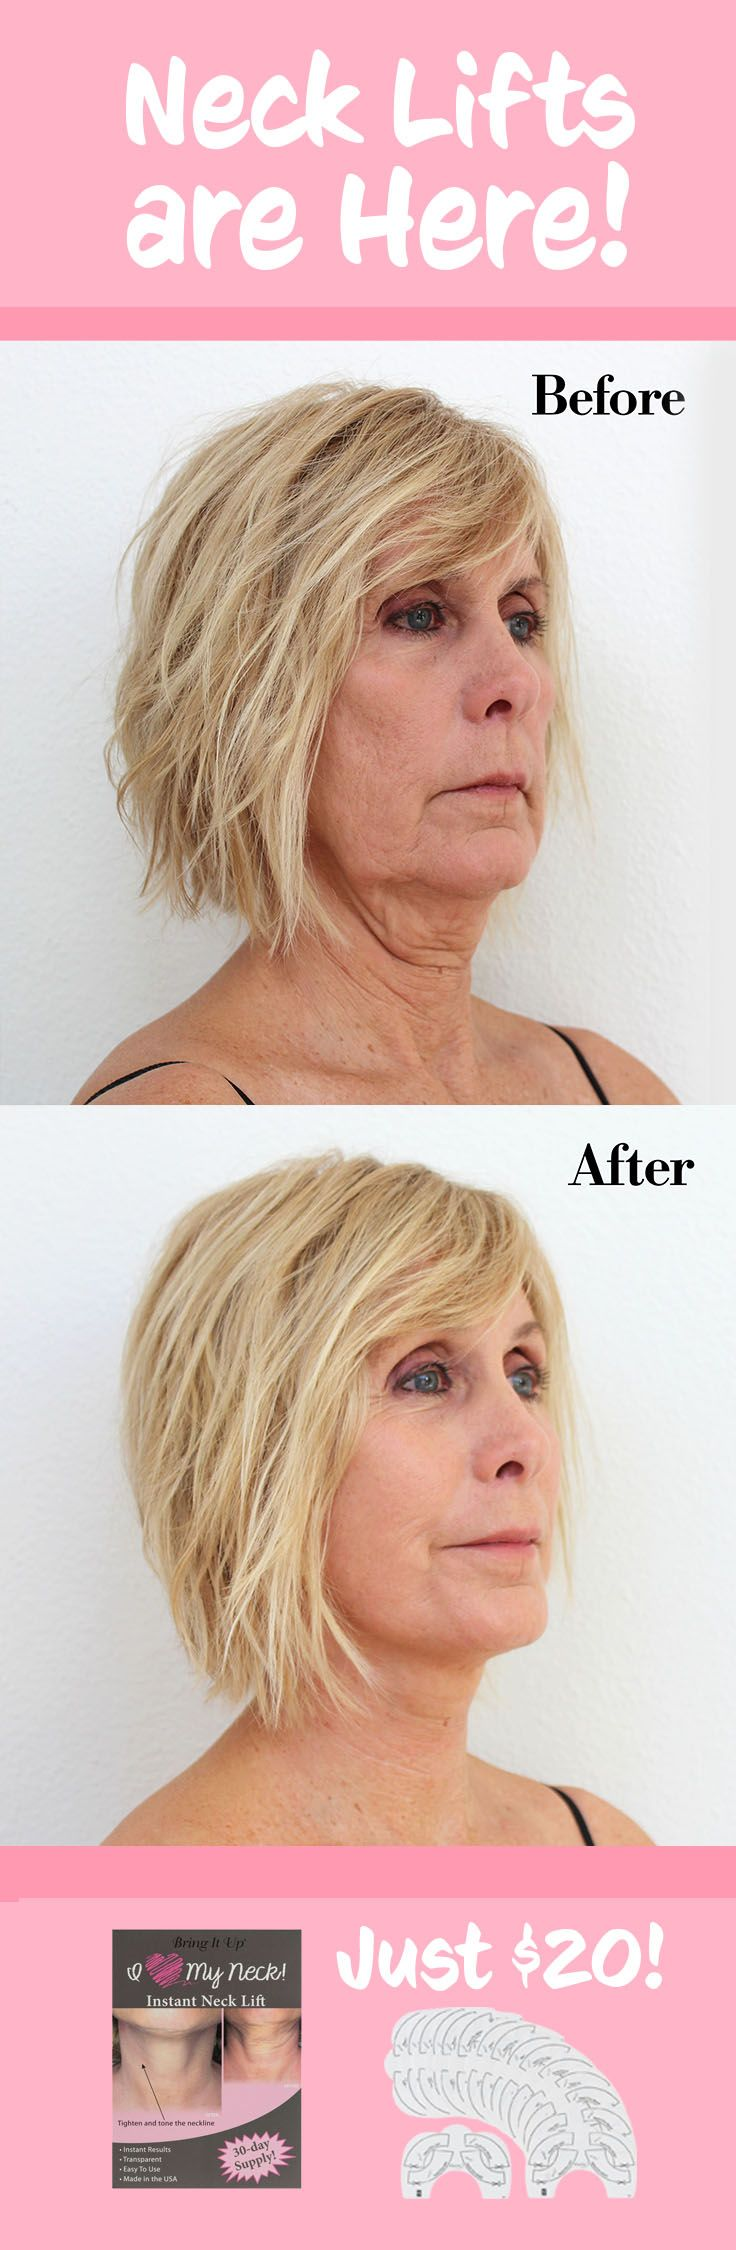 Neck Lifts are Here! And they're just $20 for 16 pairs! Don't waste your time and money with expensive surgeries when the solution is so easy! Neck lifts are easy to use. Just peel, stick, and instantly look and feel younger.   Neck Lift   Before and After Neck Lift   Anti aging remedy   anti wrinkle remedy   how to get rid of wrinkles